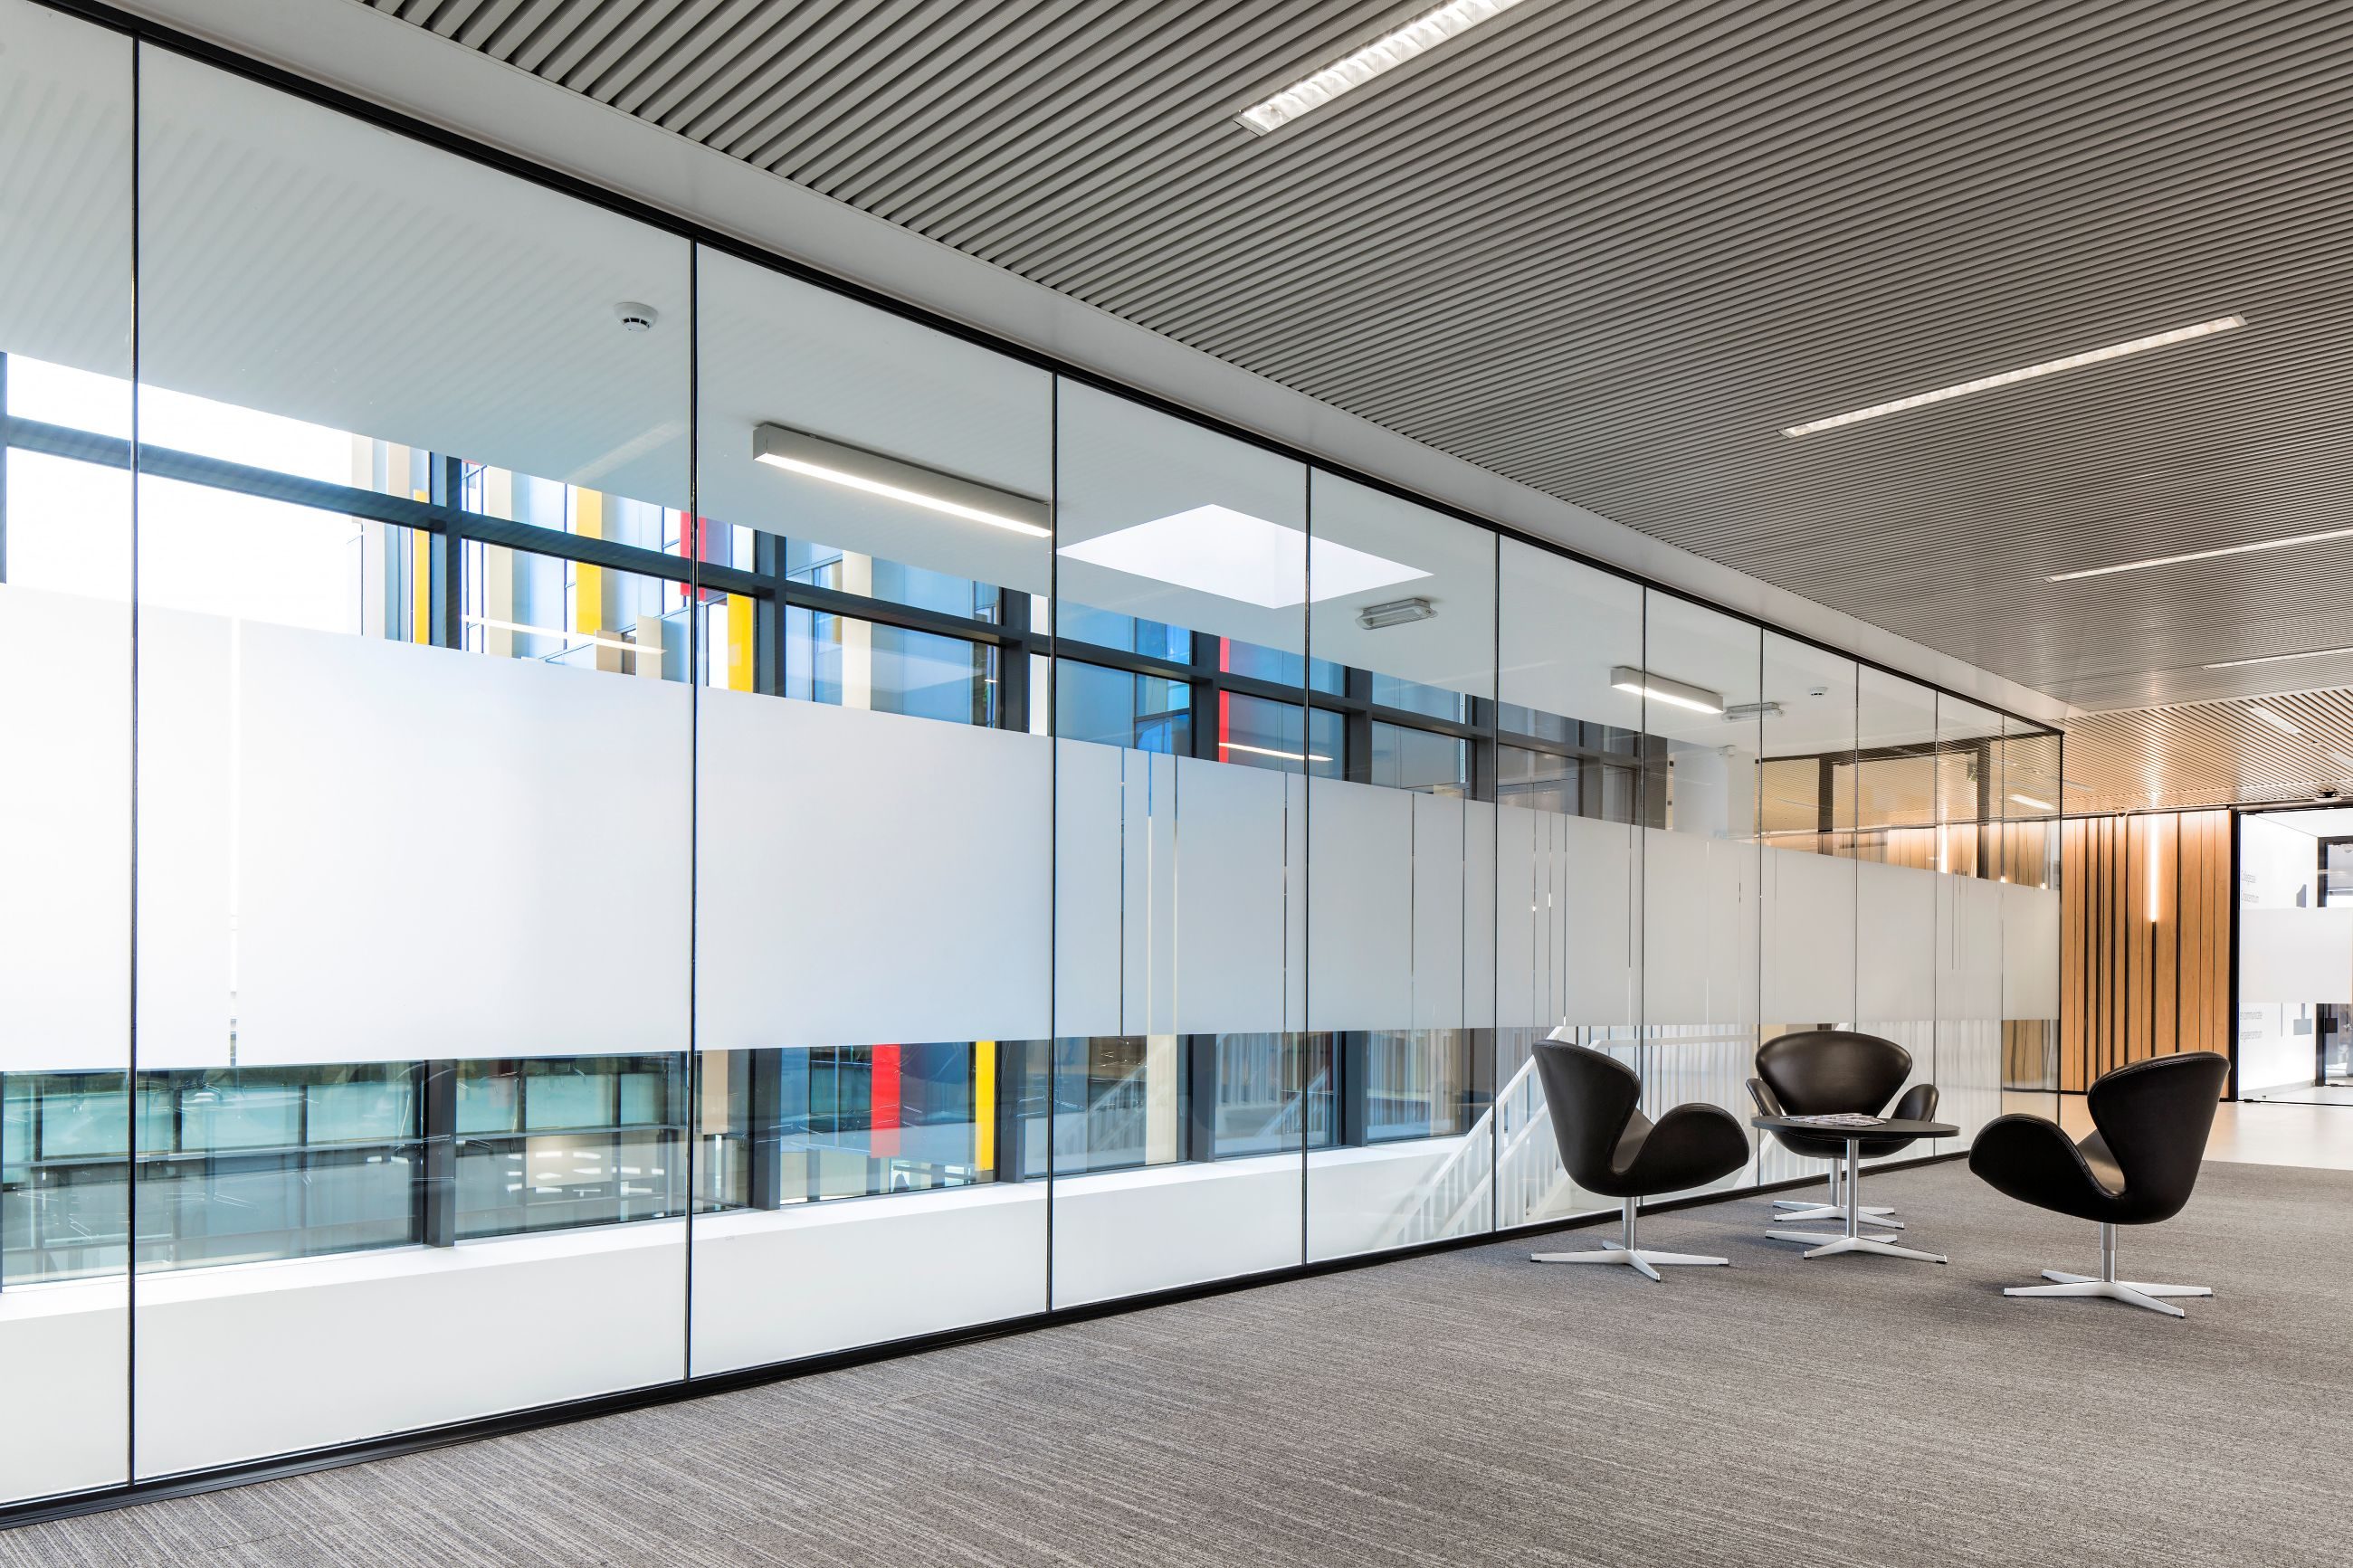 Fire resistant glazed walls, CONCEPT 60